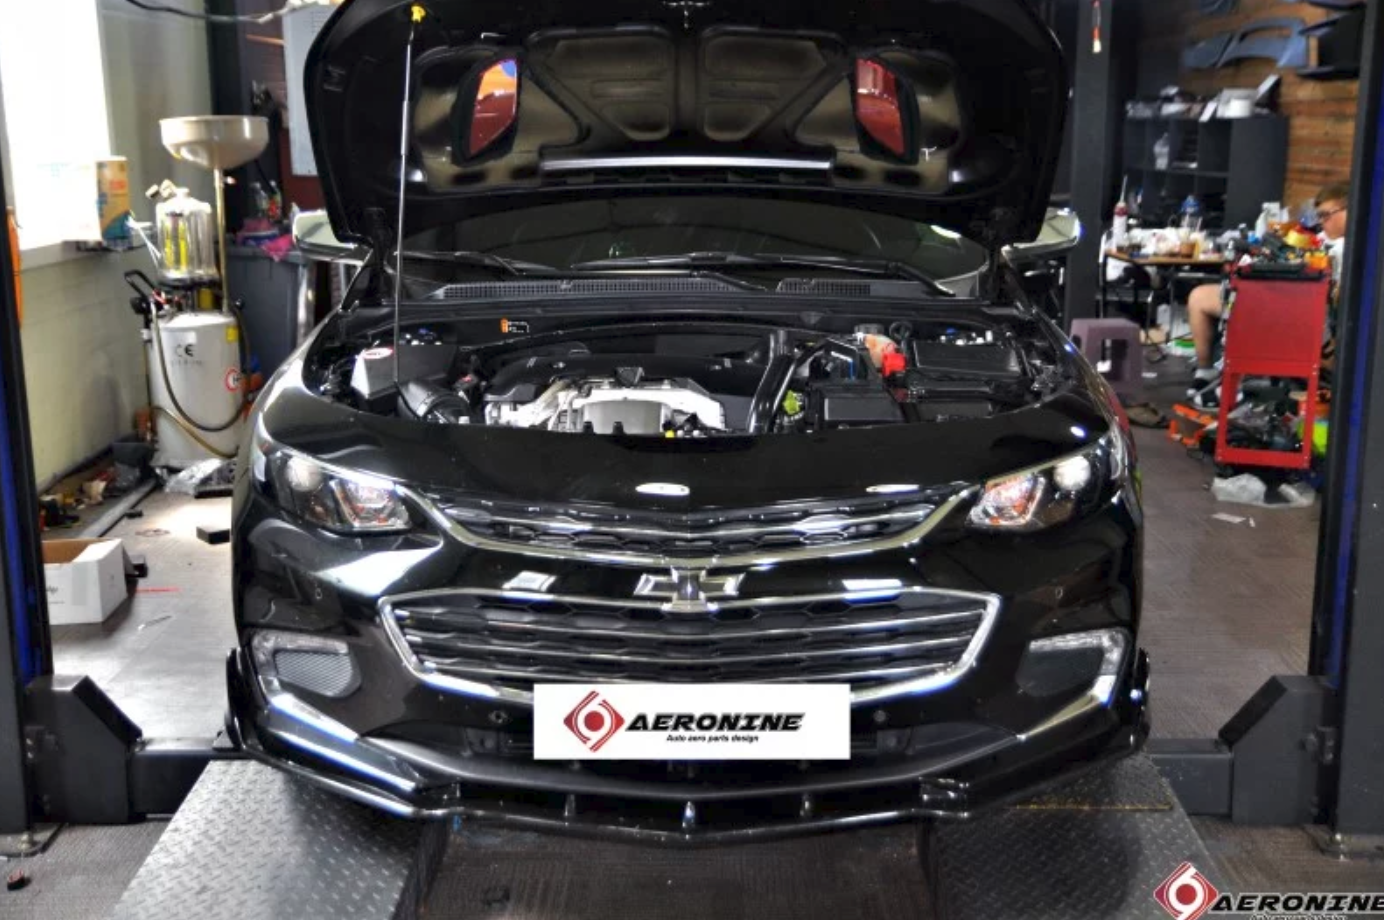 This Body Kit Can Make Your Chevy Malibu Look Like a Camaro